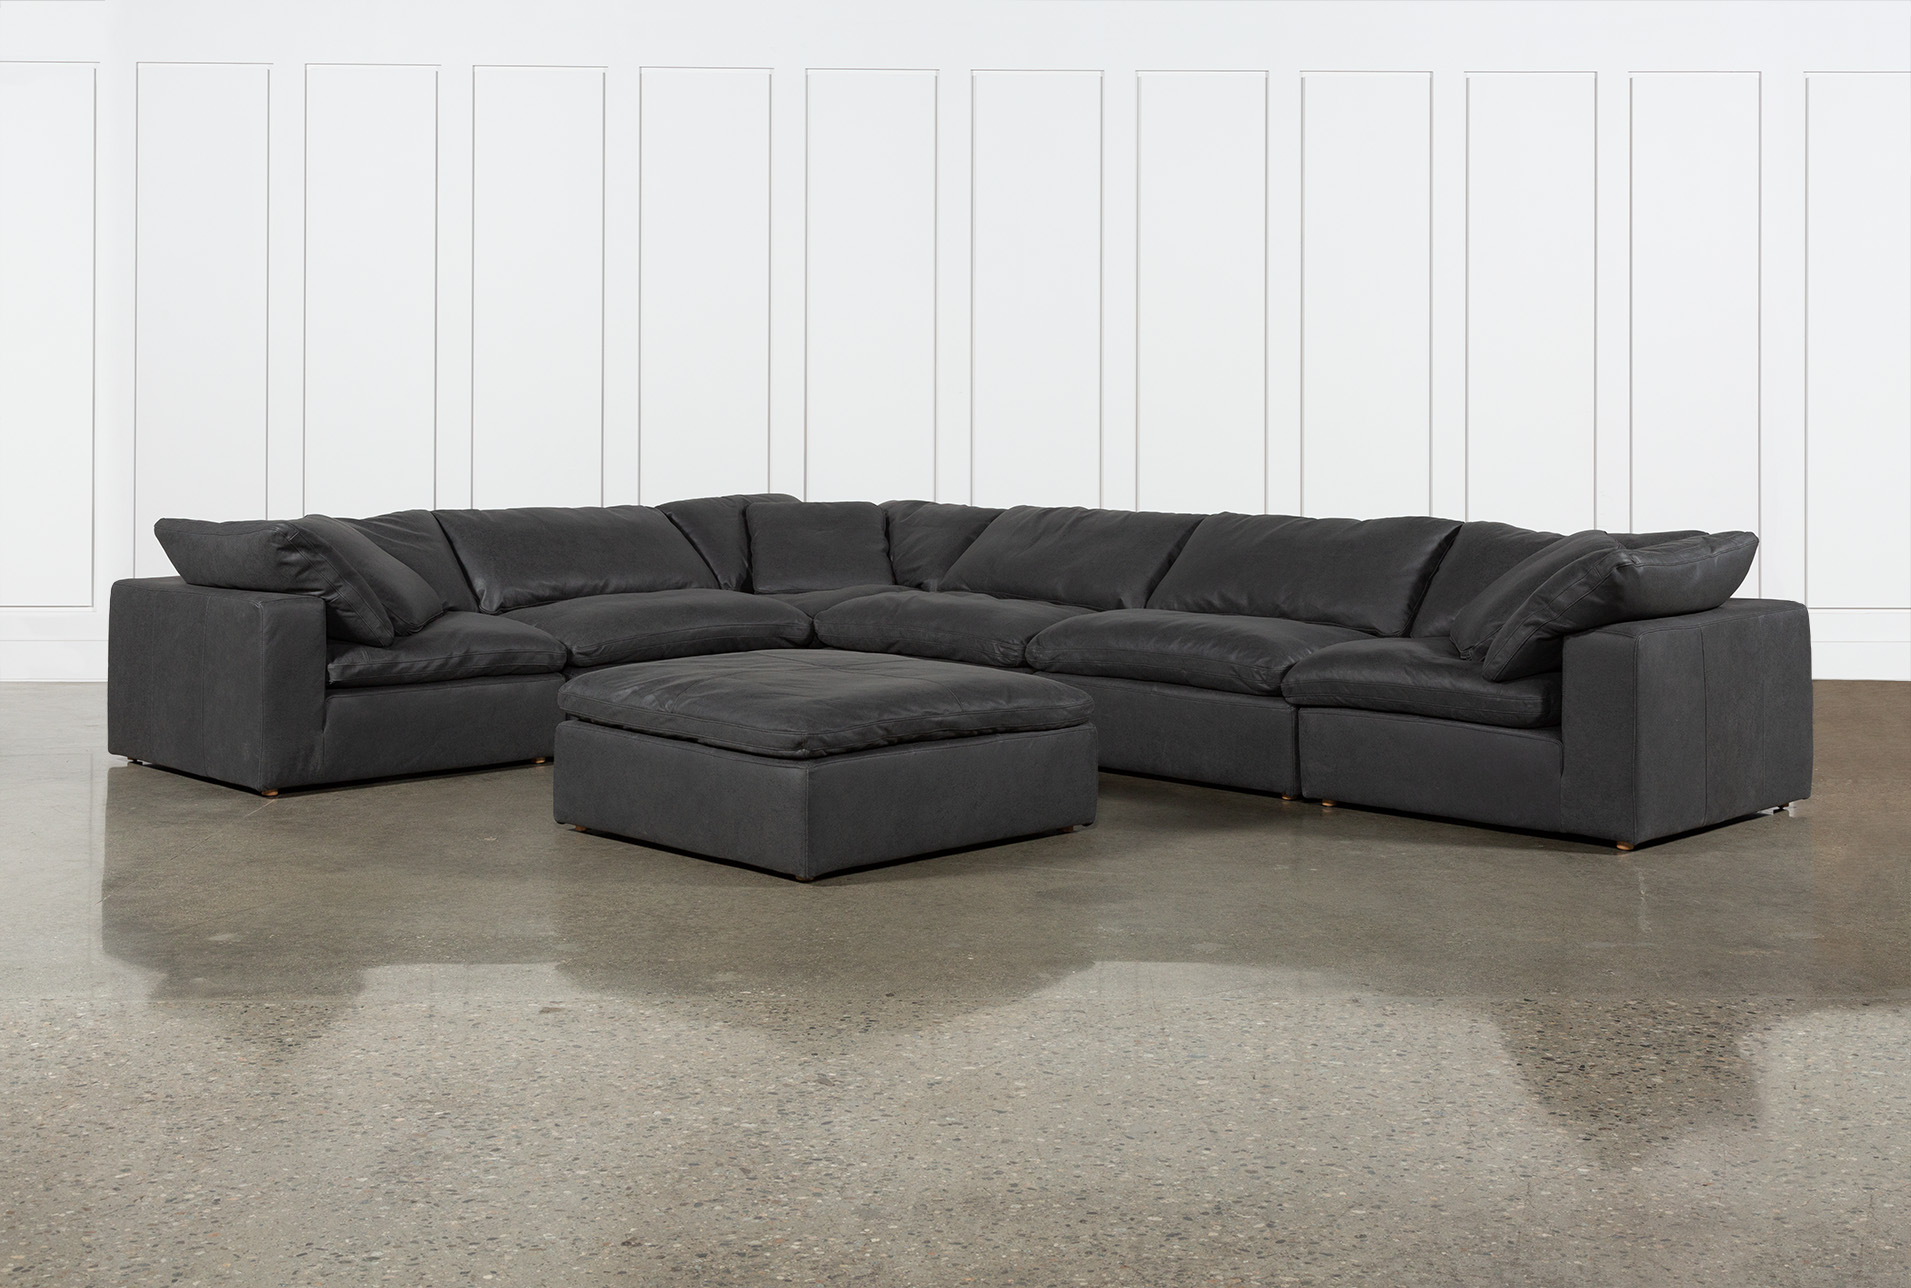 Hidden Cove Grey Leather 7 Piece Sectional With Ottoman | Living Spaces